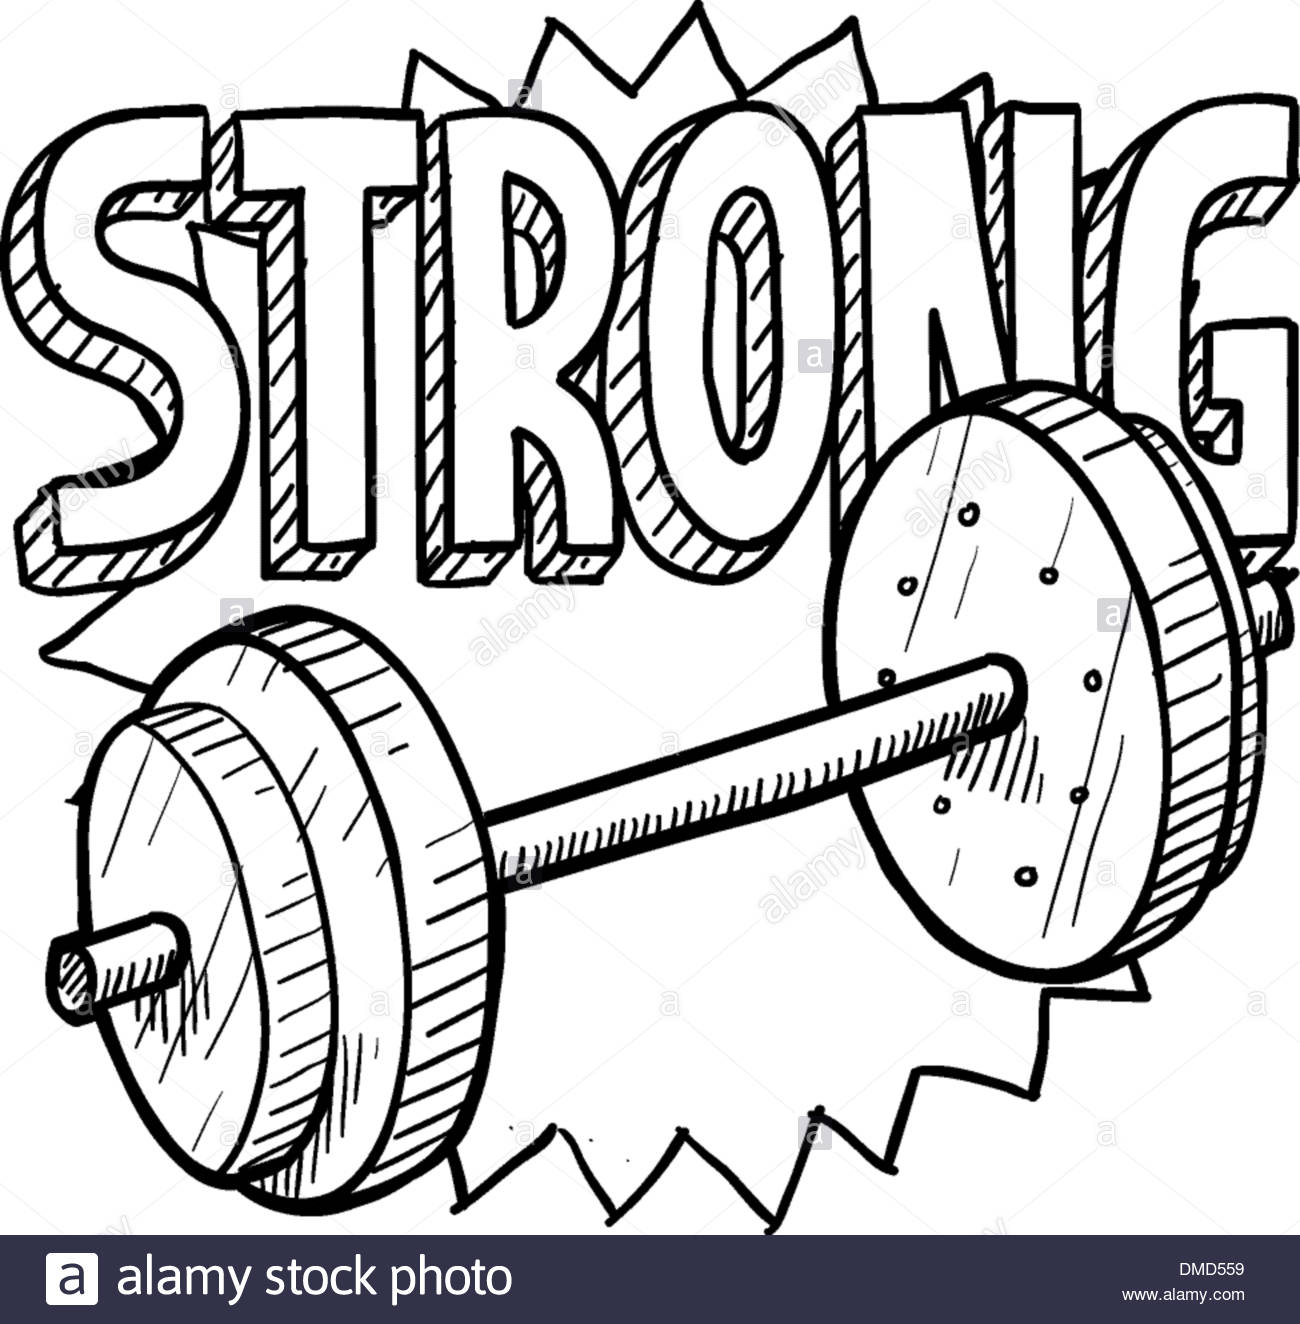 1300x1324 Weightlifting Sketch Stock Vector Art Amp Illustration, Vector Image